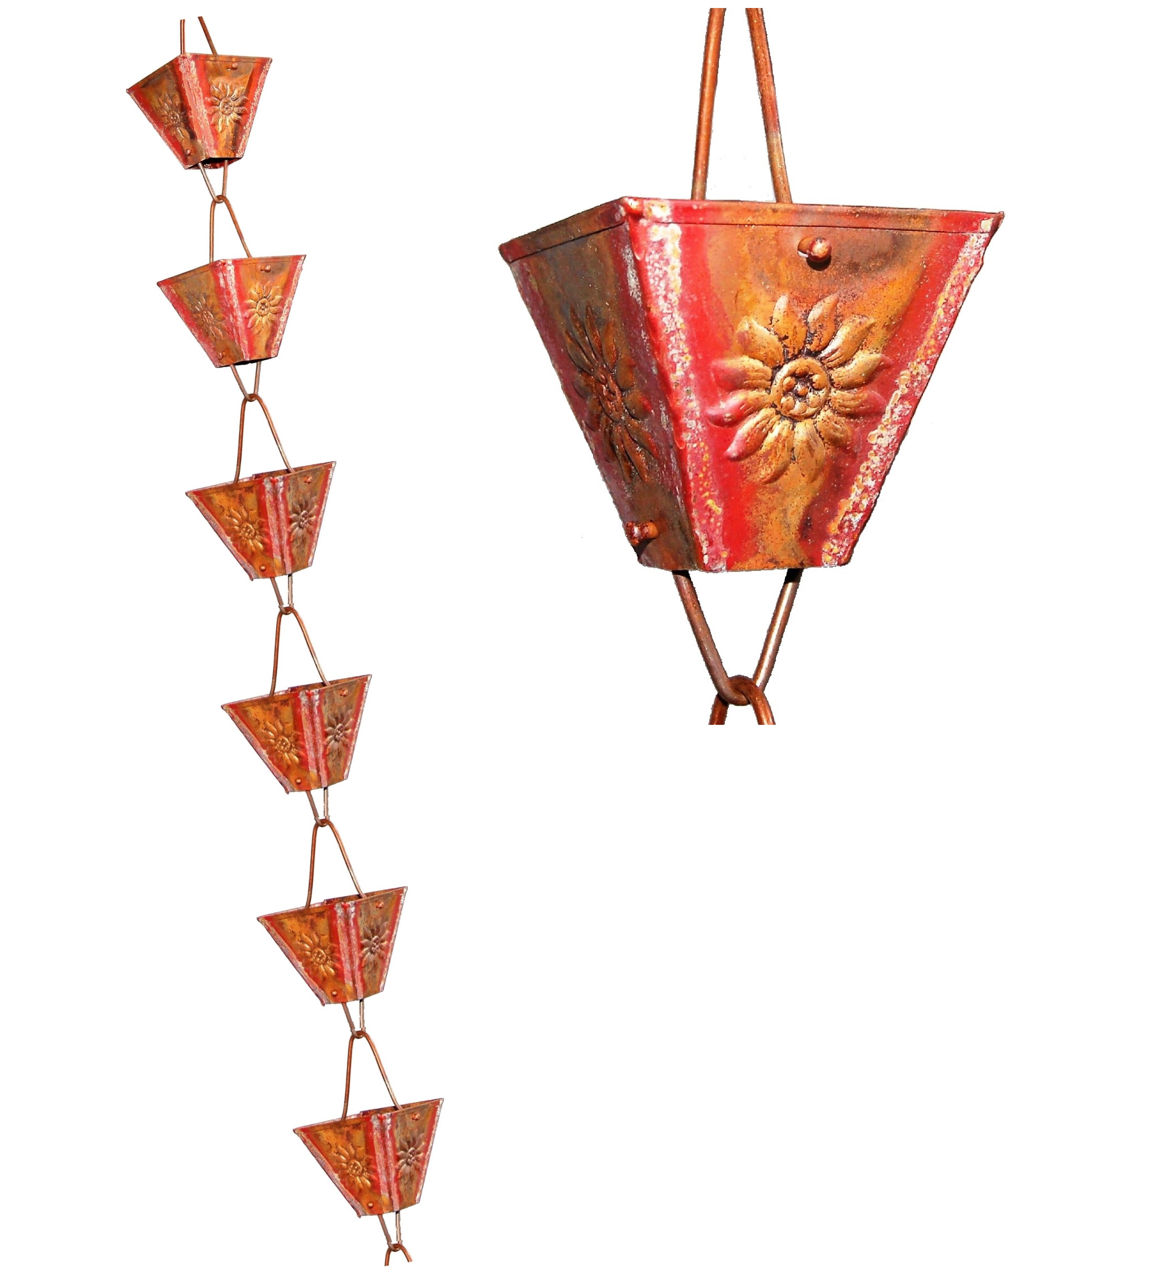 Picture of U-nitt pure Copper Rain Chain: XL Square Cup Embossed Sunflower 8 - 1/2 ft #5515